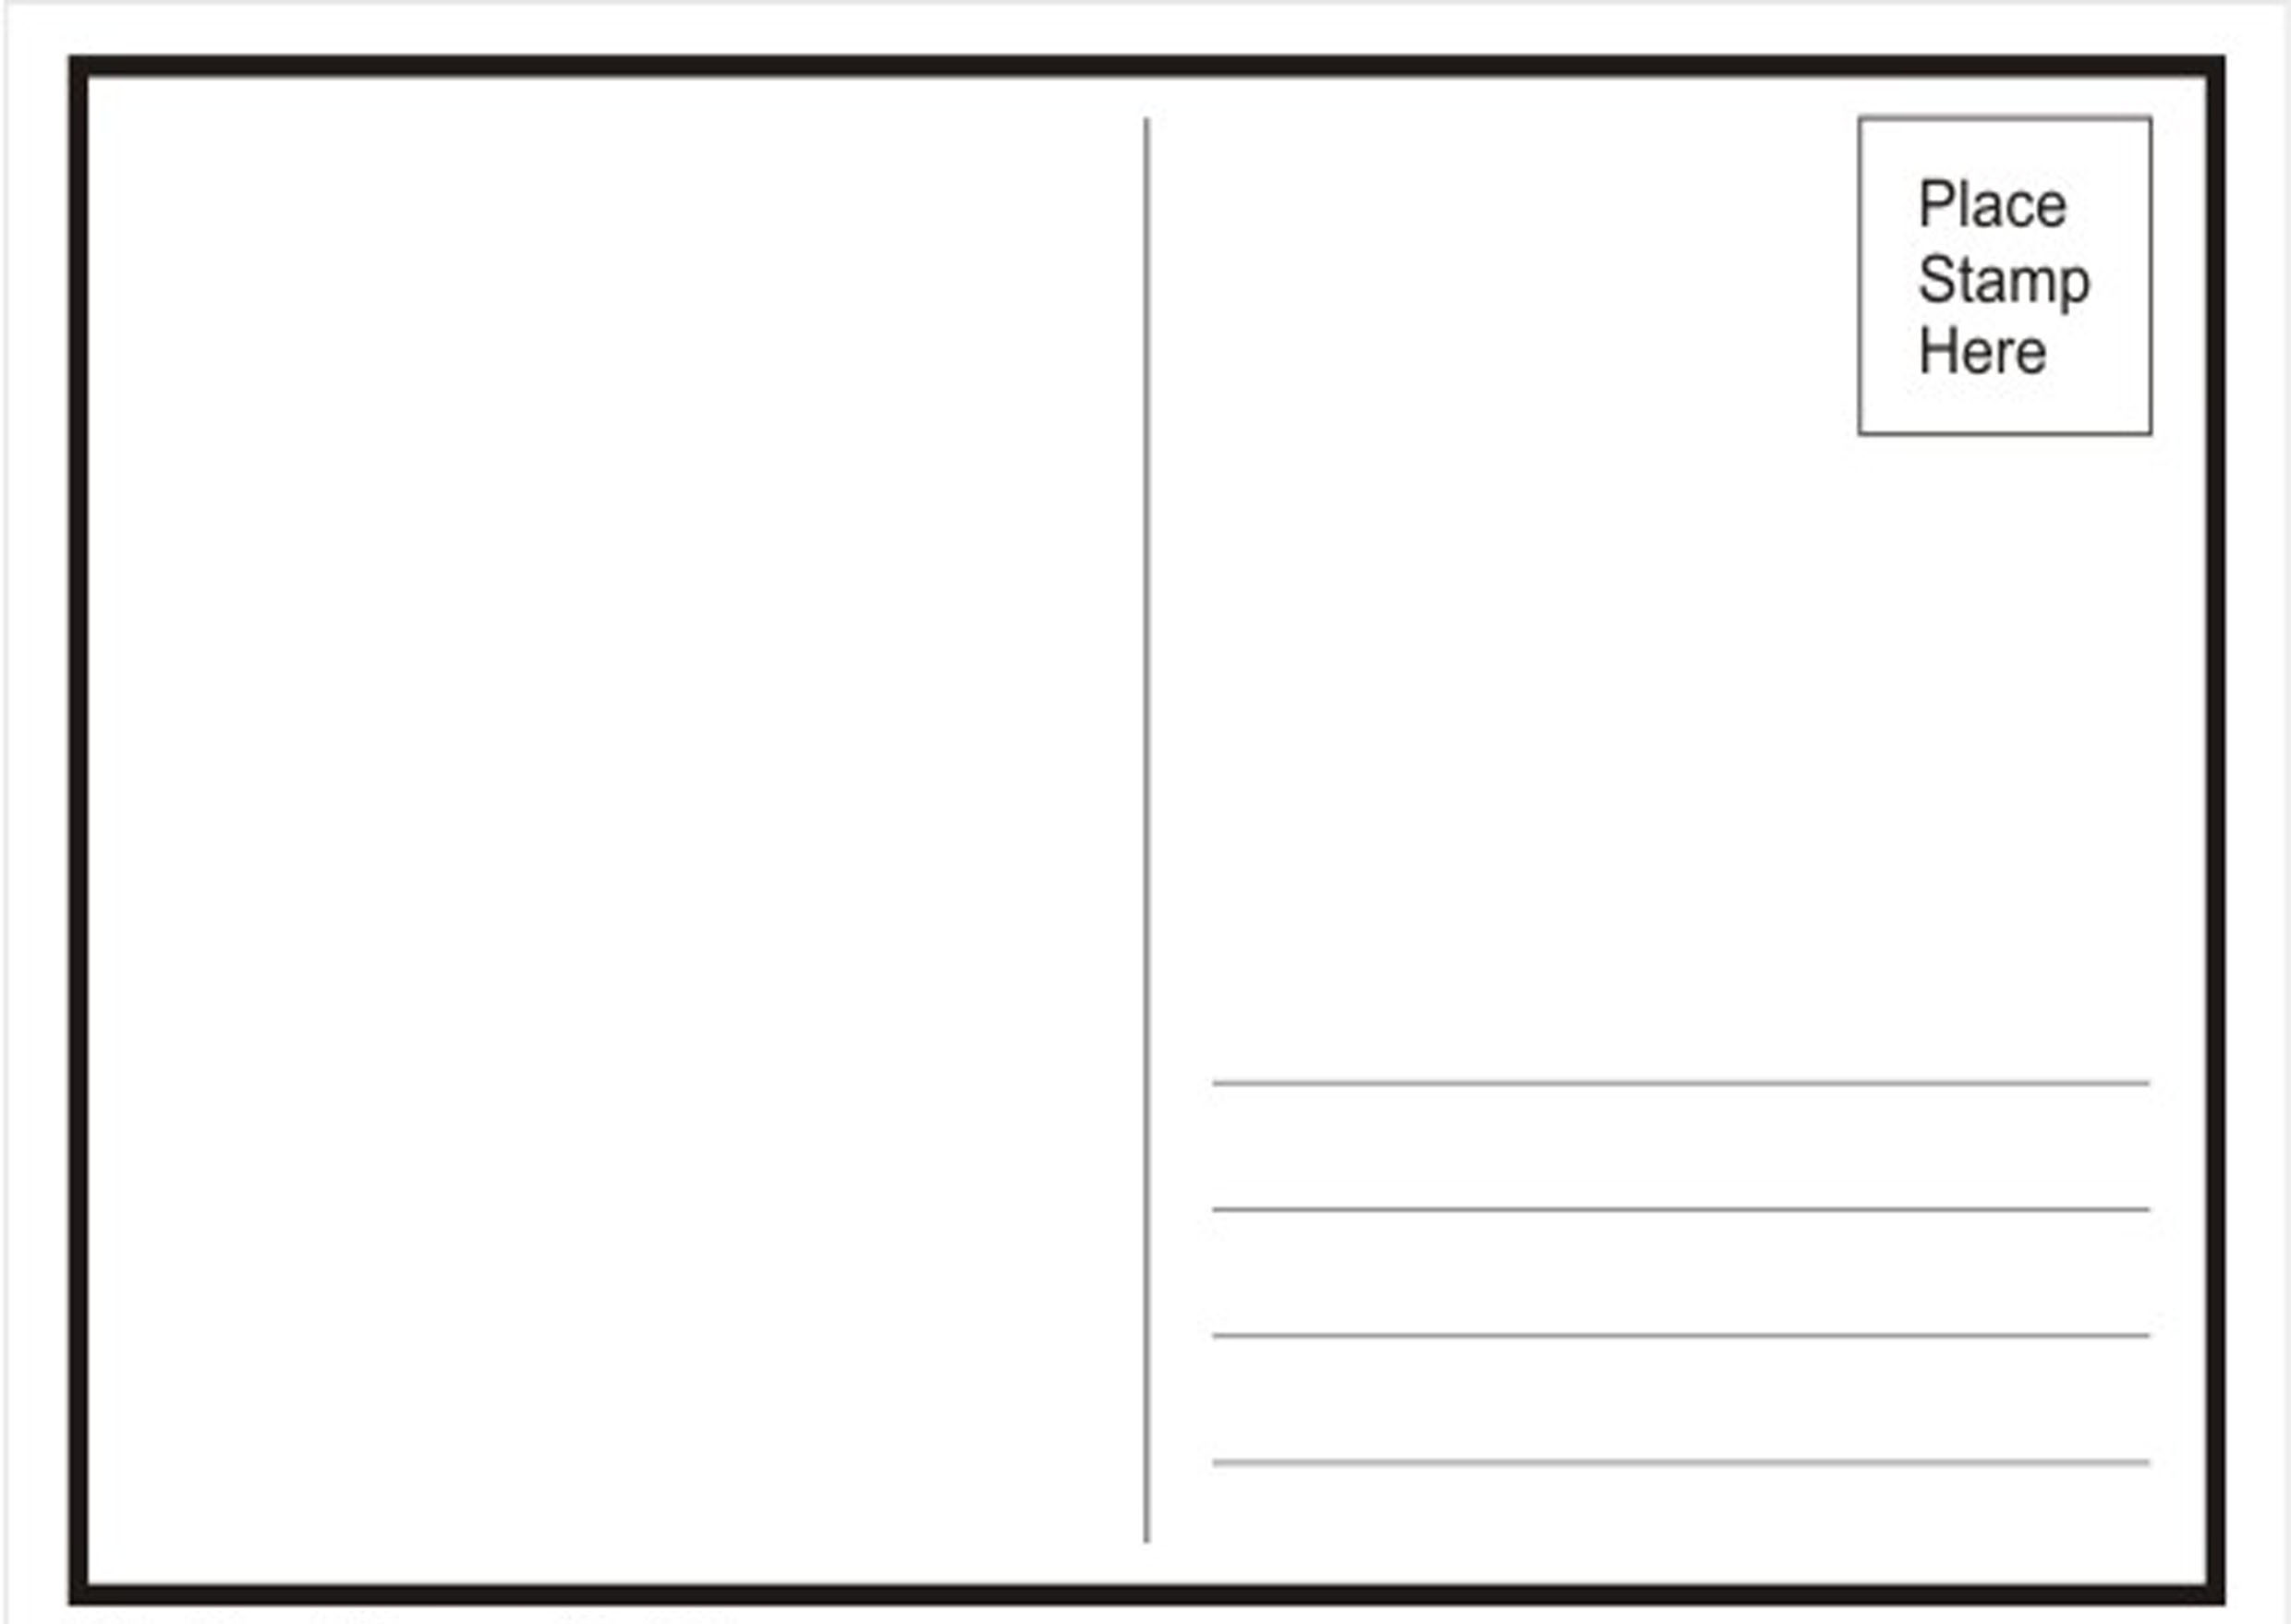 Alg research lorenashleigh page 3 for Microsoft word 4x6 postcard template